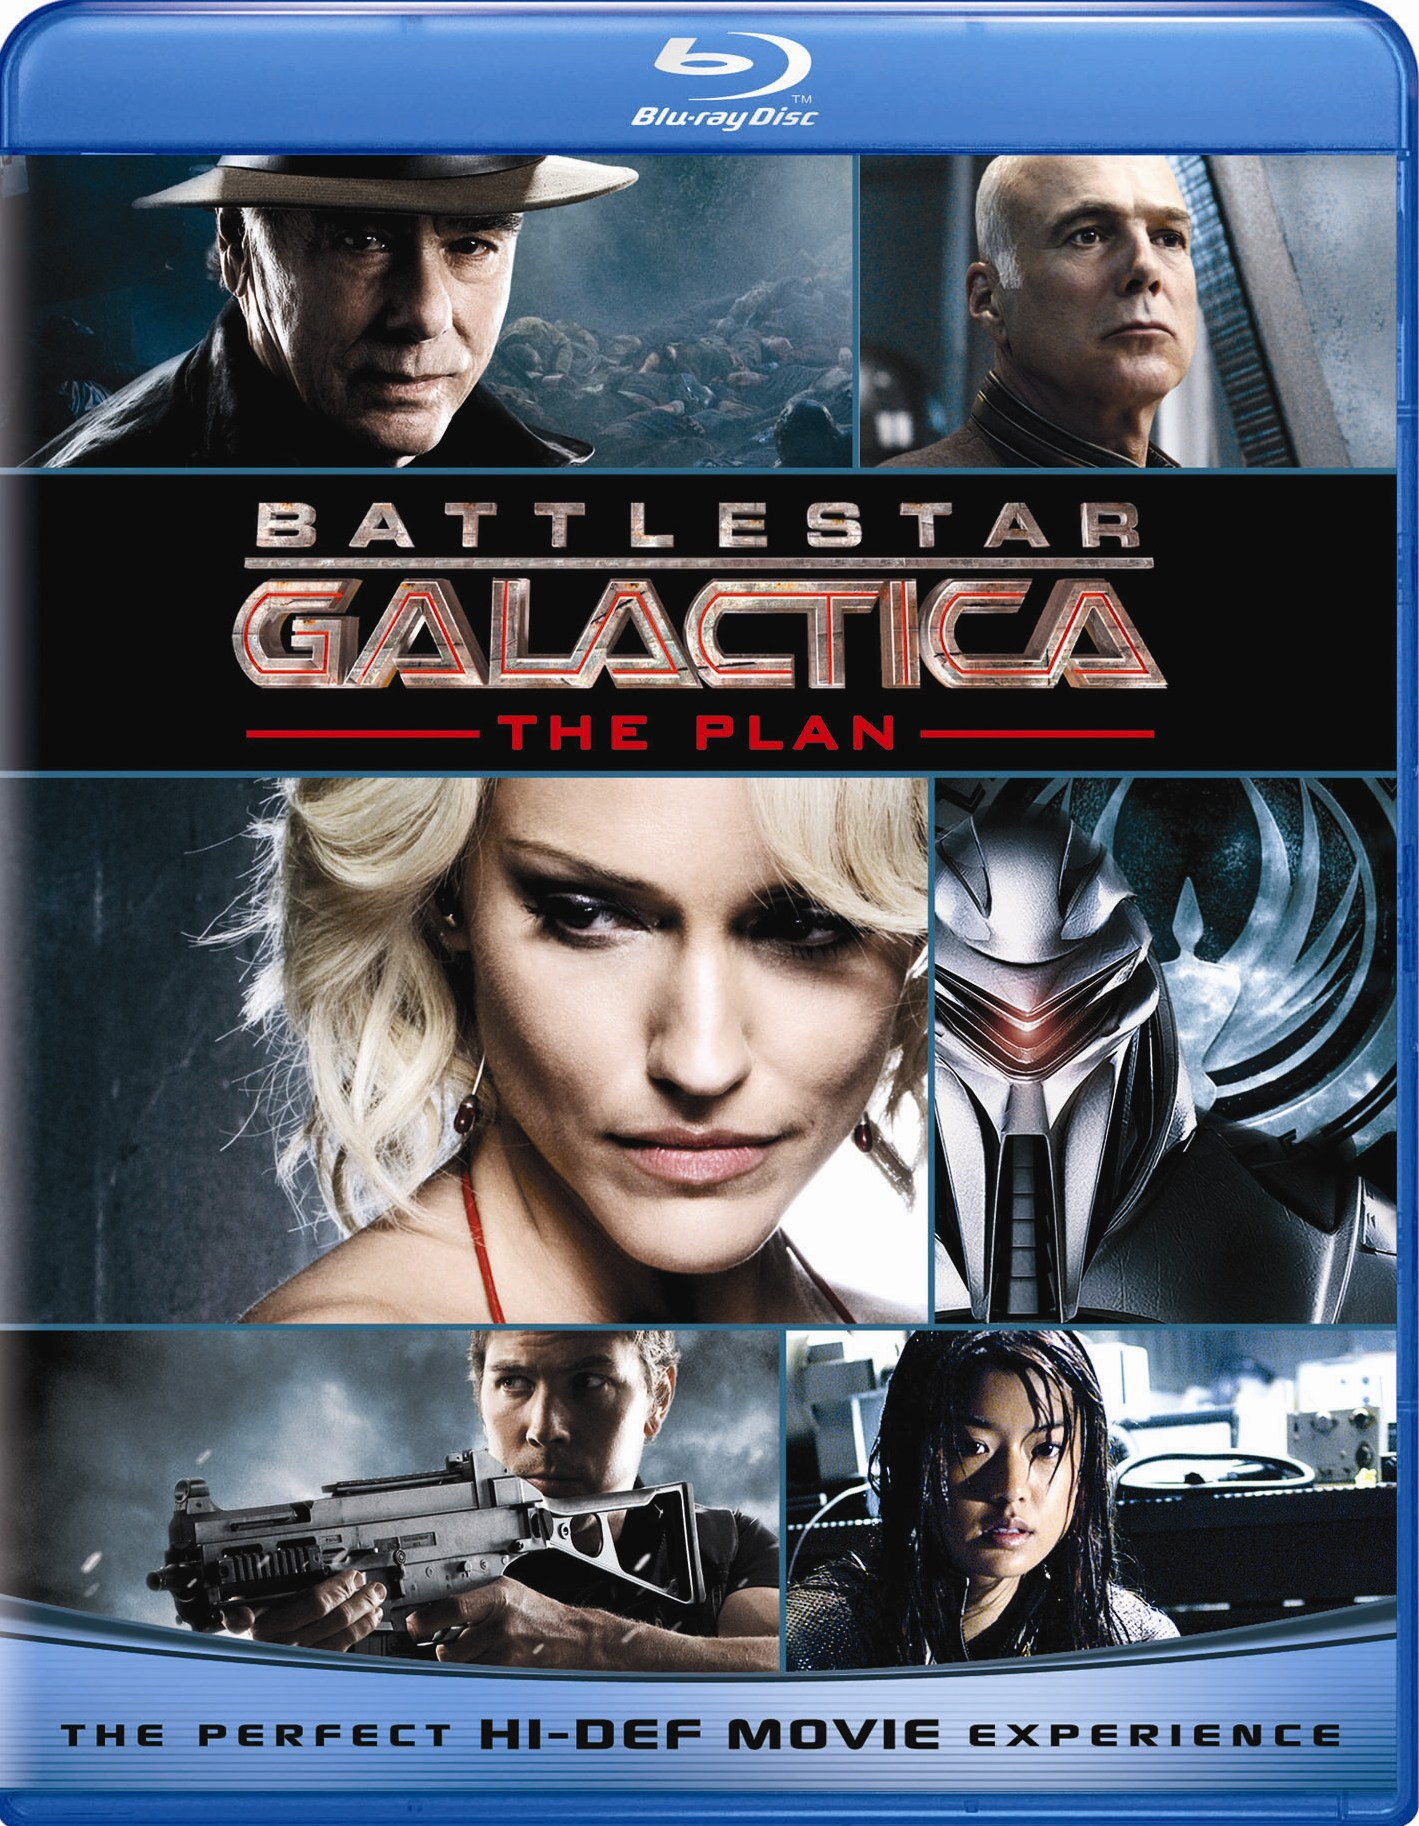 Battlestar Galactica The Plan 2009 720p BluRay DTS x264-quaz